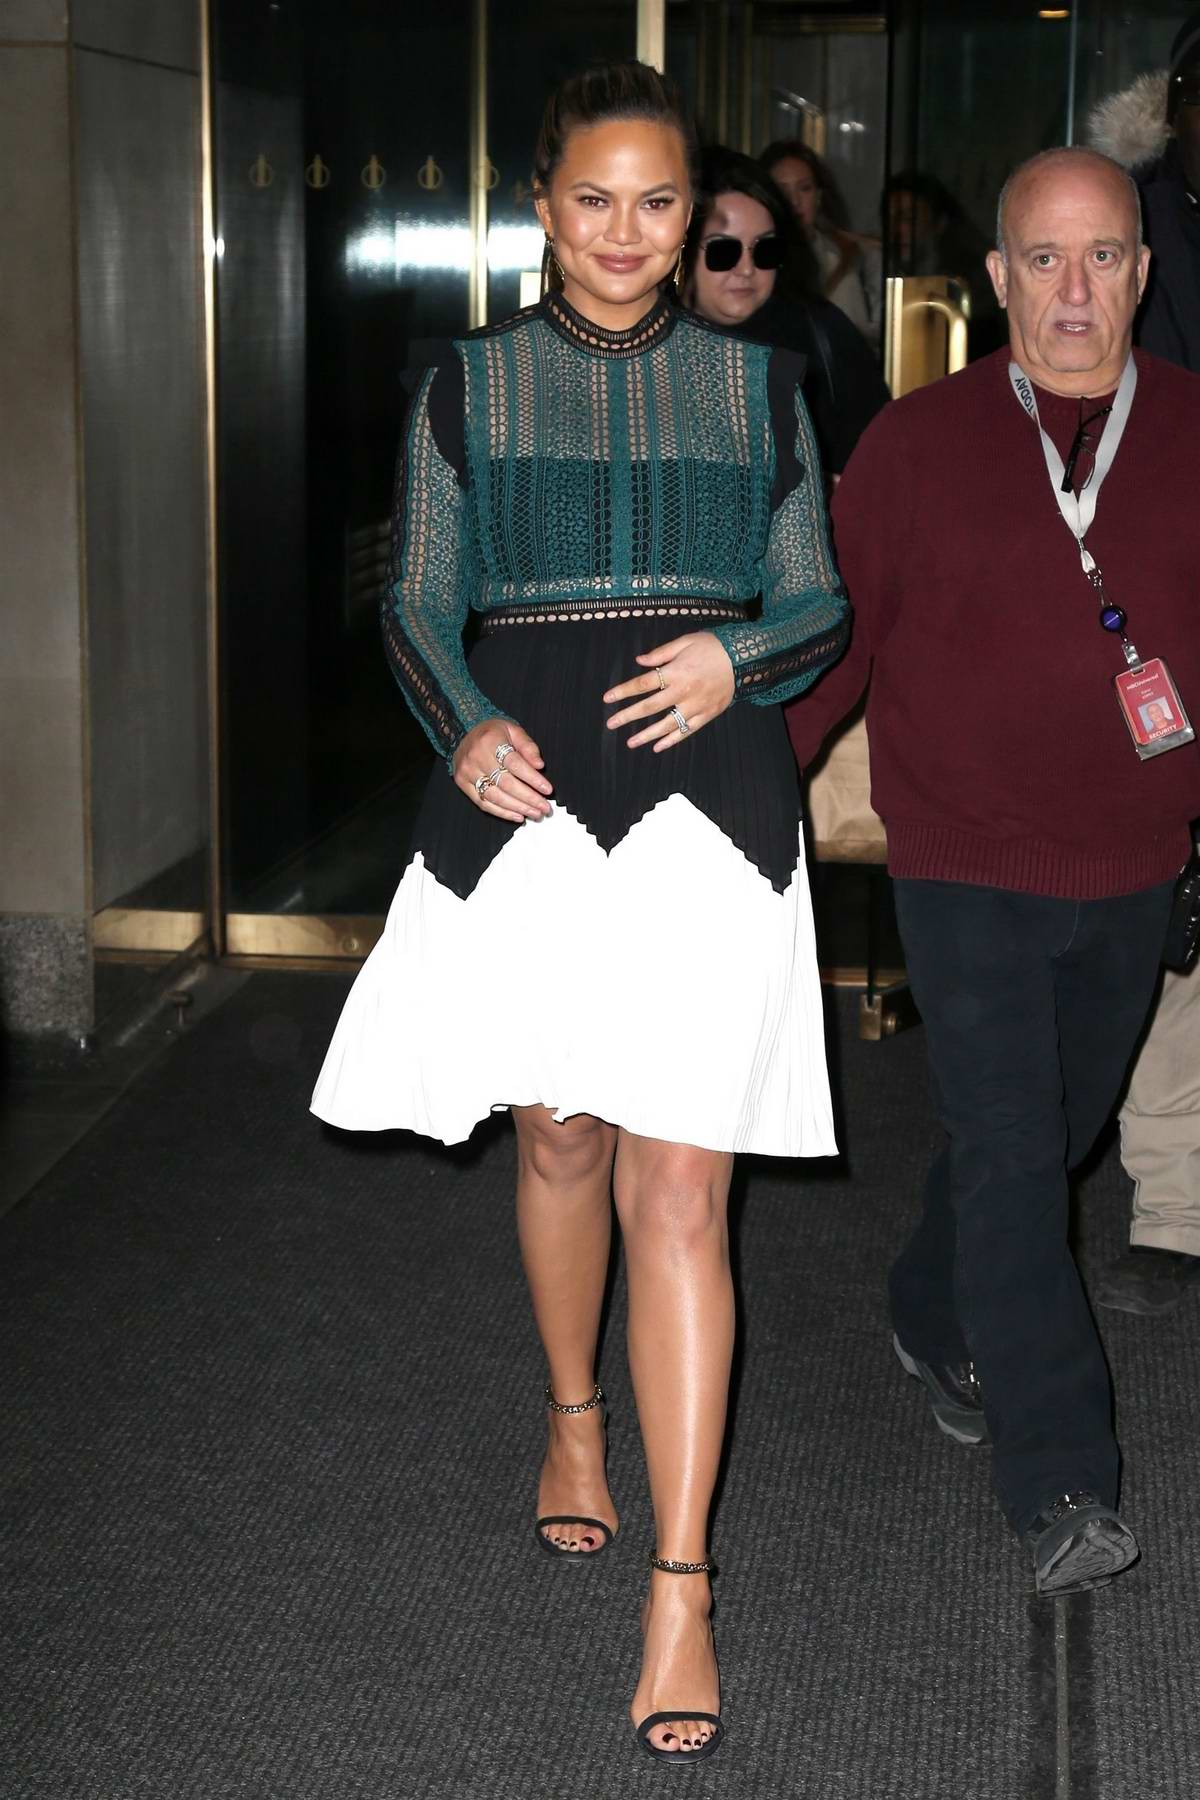 Chrissy Teigen spotted as she leaves NBC Studios after visiting 'Today Show' in New York City